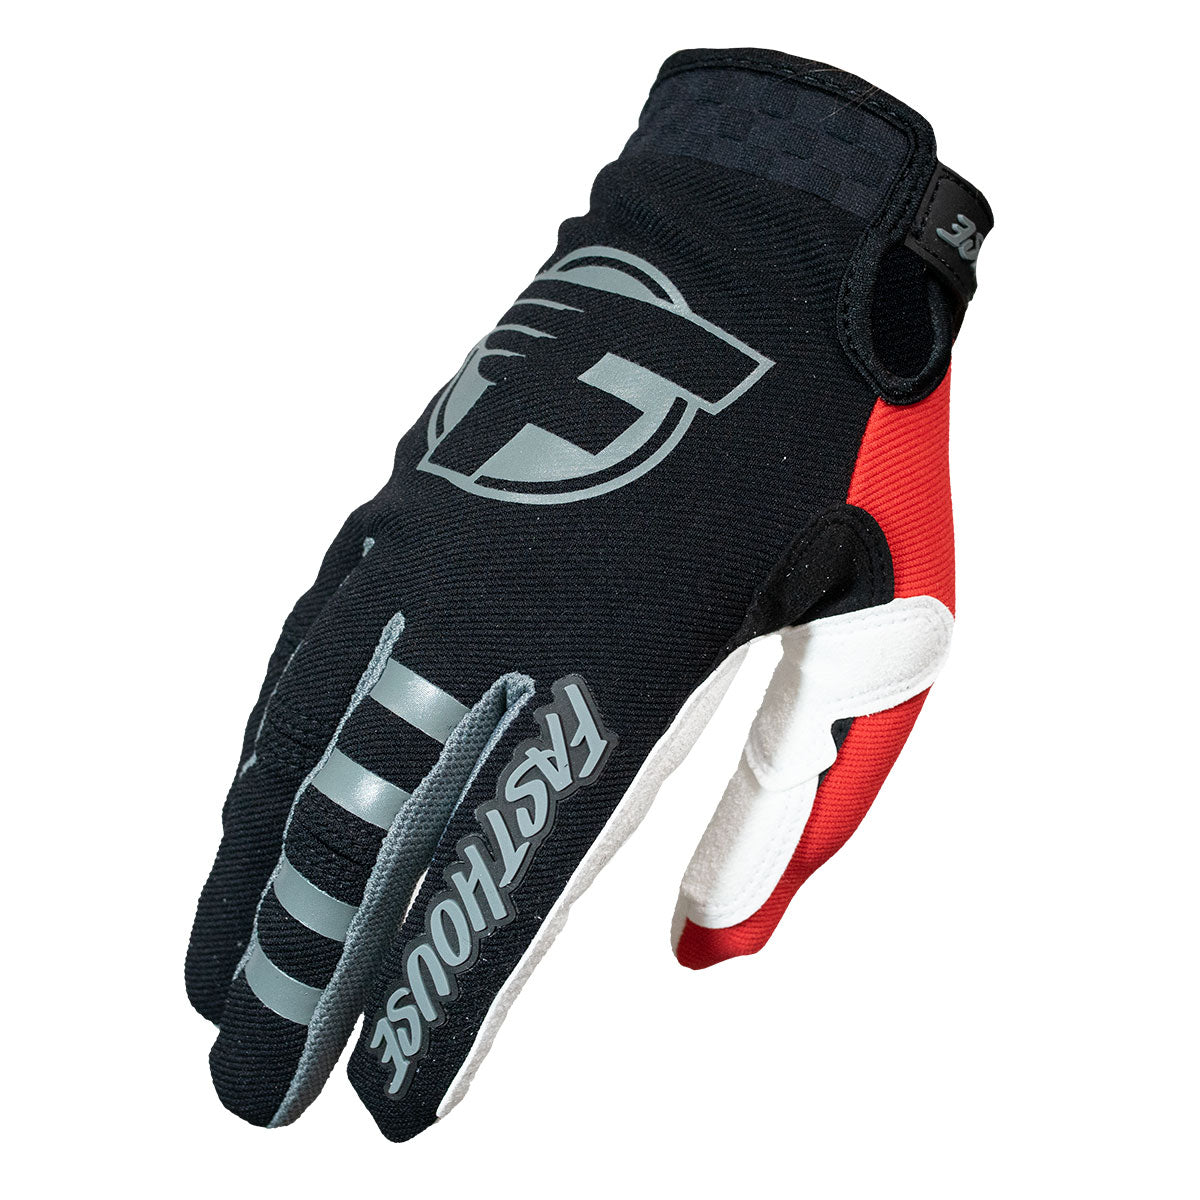 Howler Glove - Black/Red